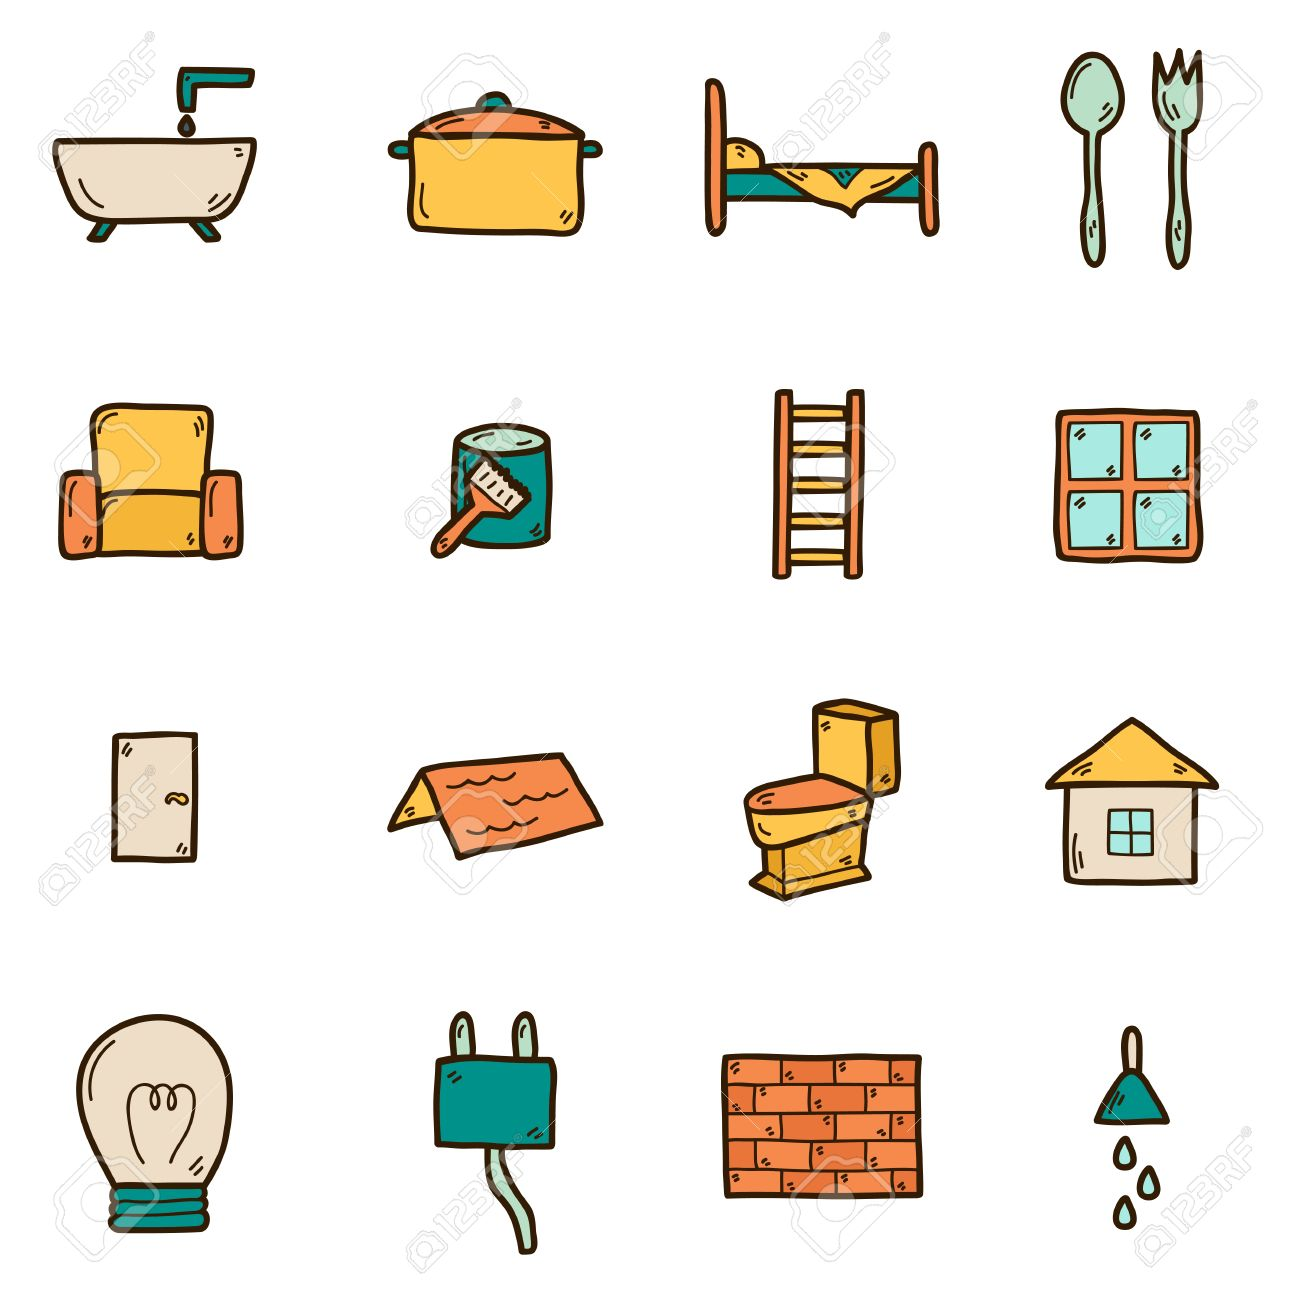 Set Of Hand Drawn Icons On Home Remodeling Theme: Door, Wall, Paint,